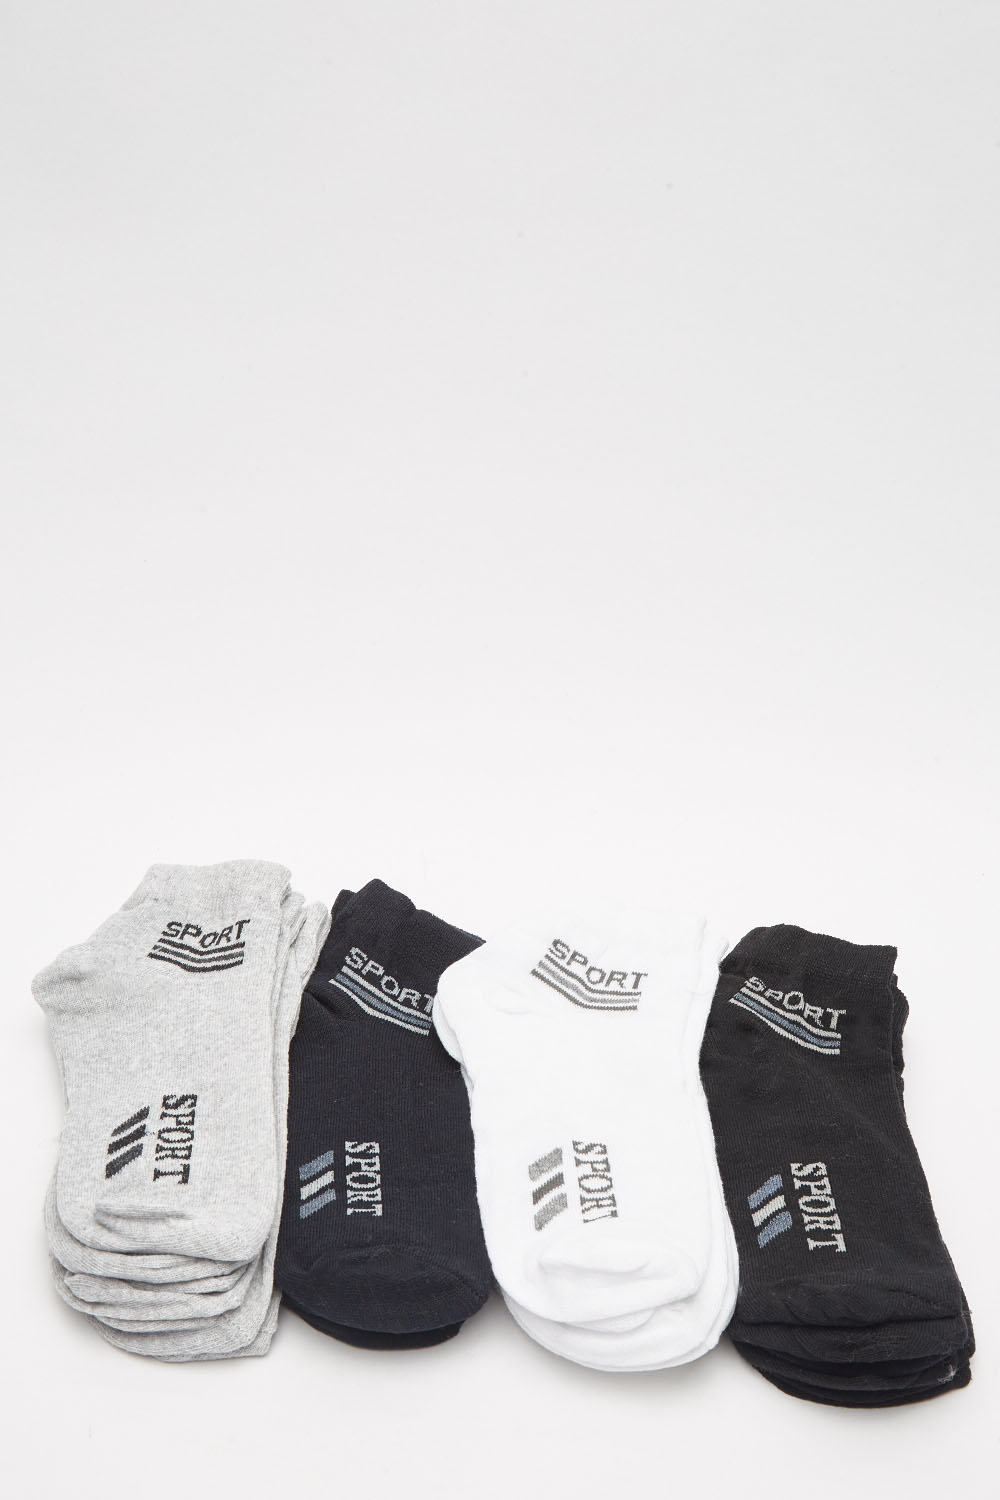 fce56ca51b6 Pack Of 12 Mens Sports Mini Socks - Just £5